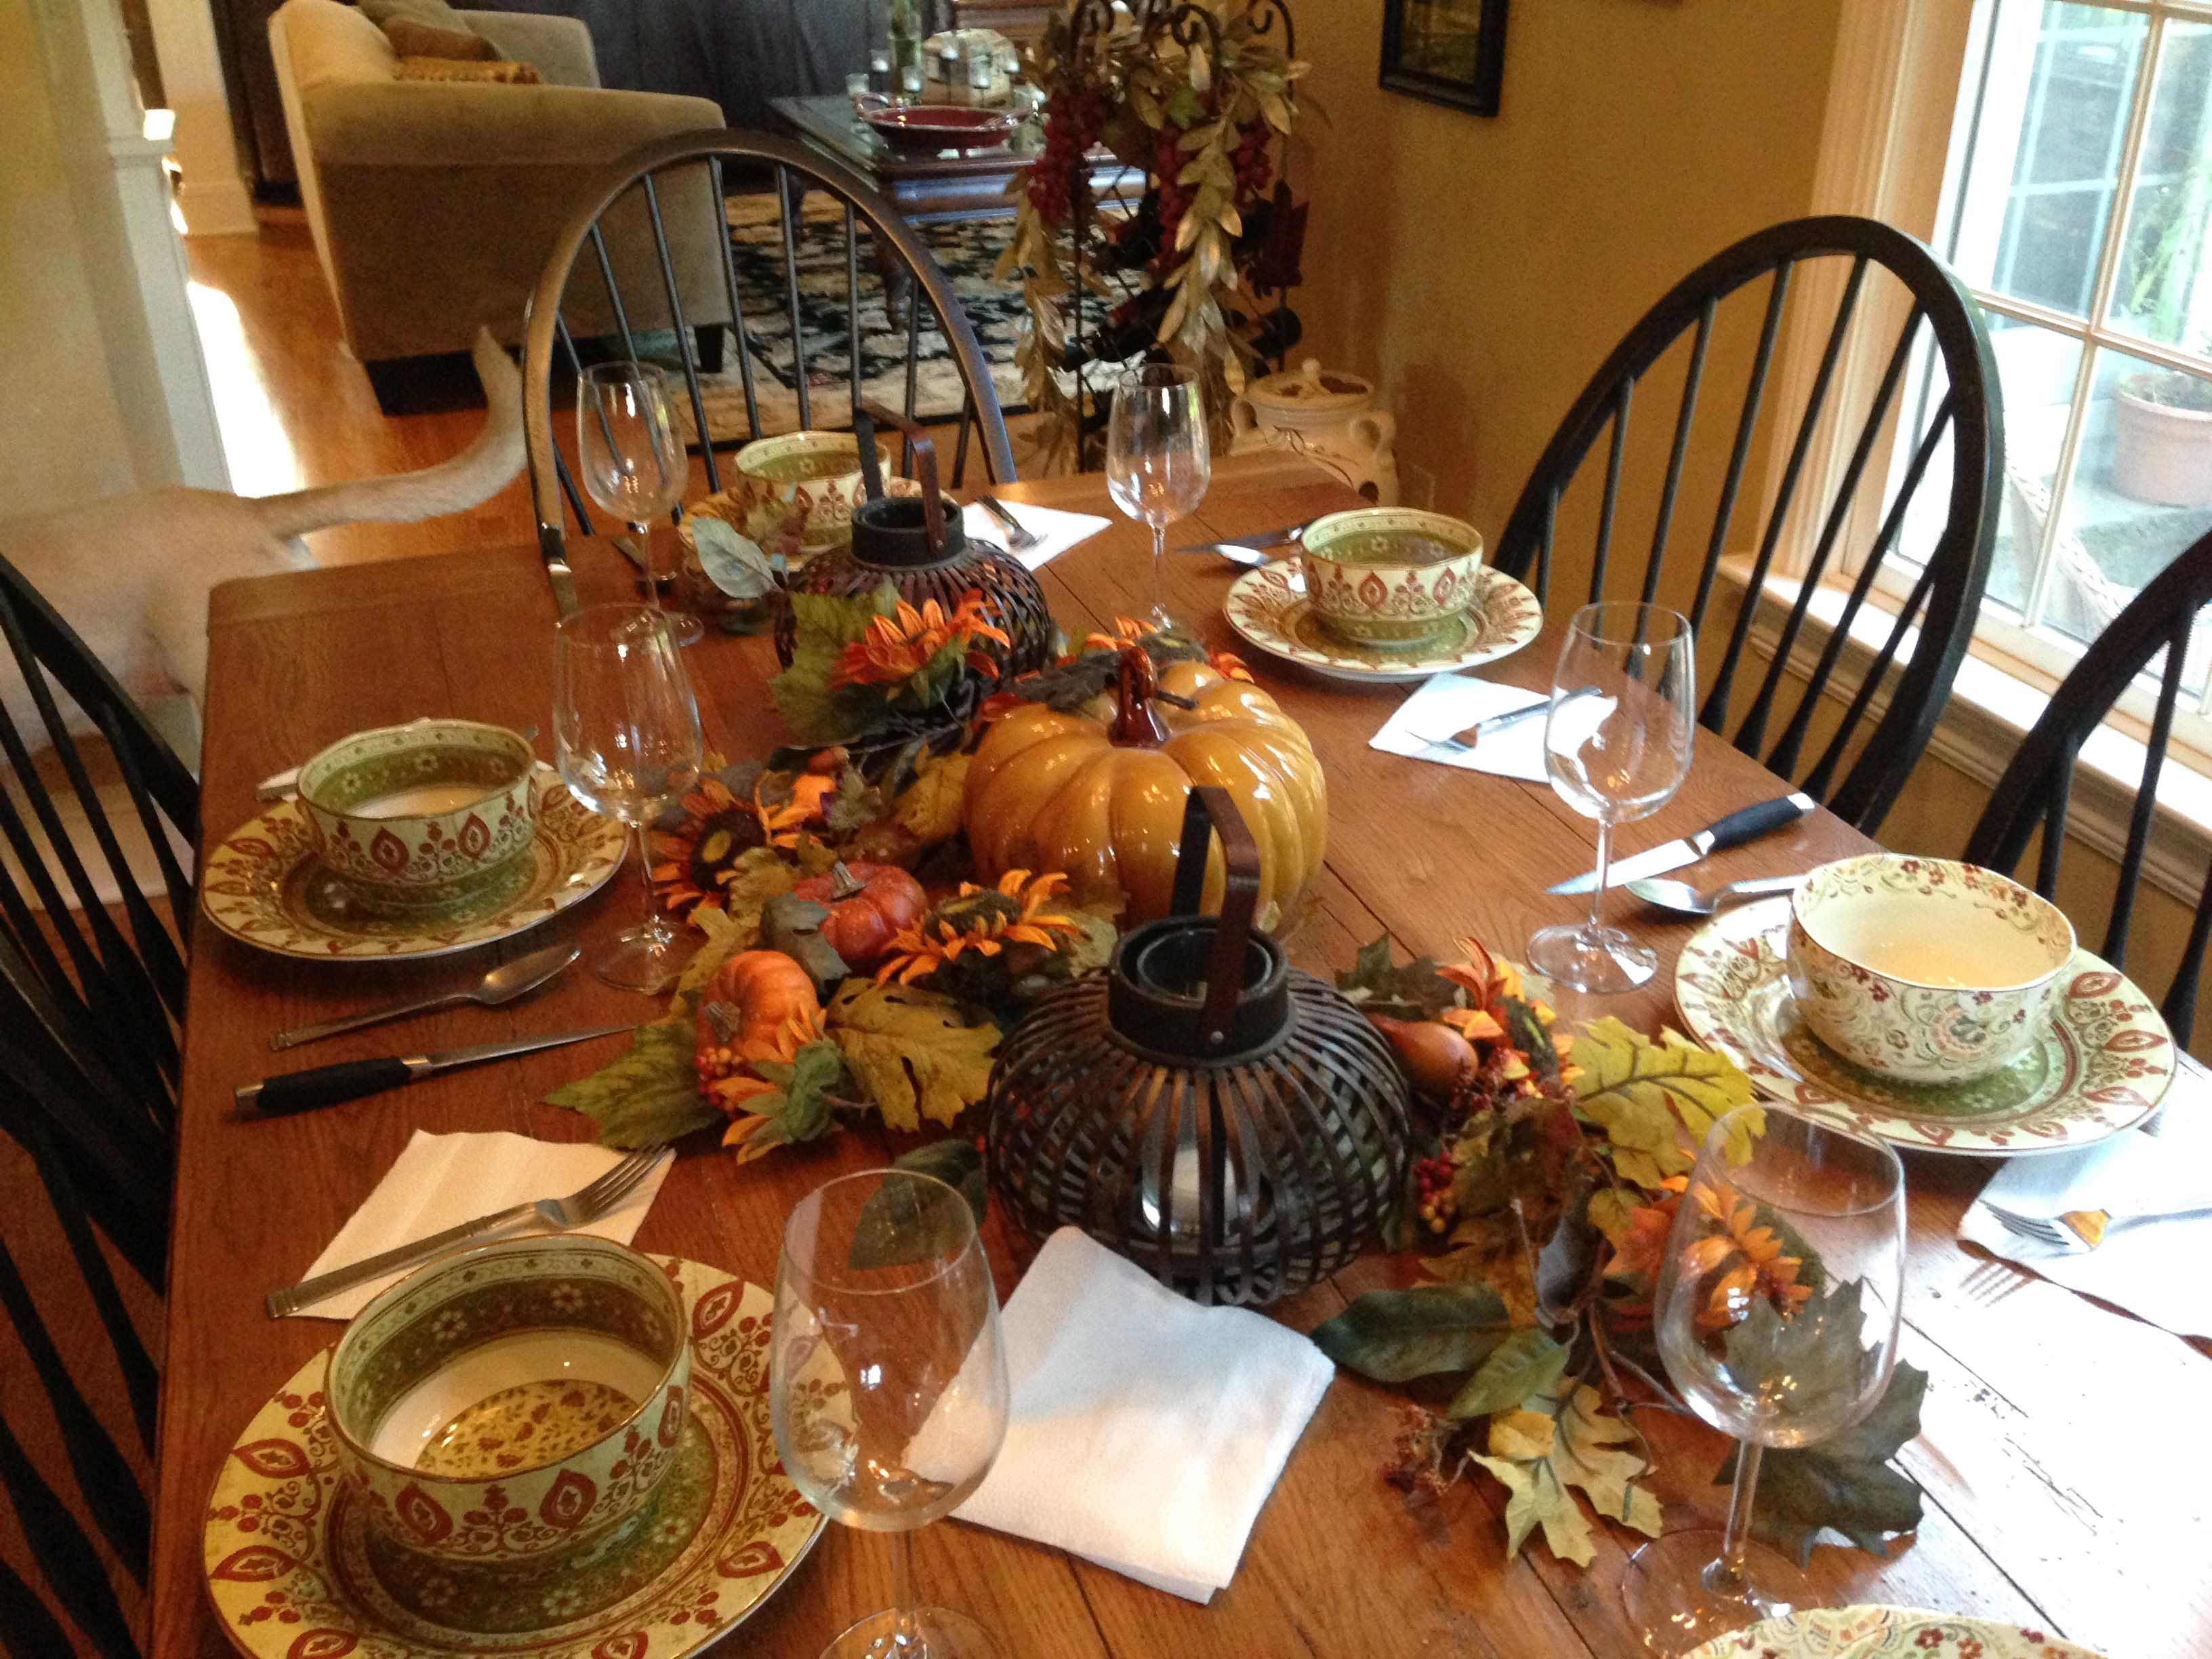 Fall dining room table decorating ideas - Autumn Table Decorating Ideas Fall Table Settings